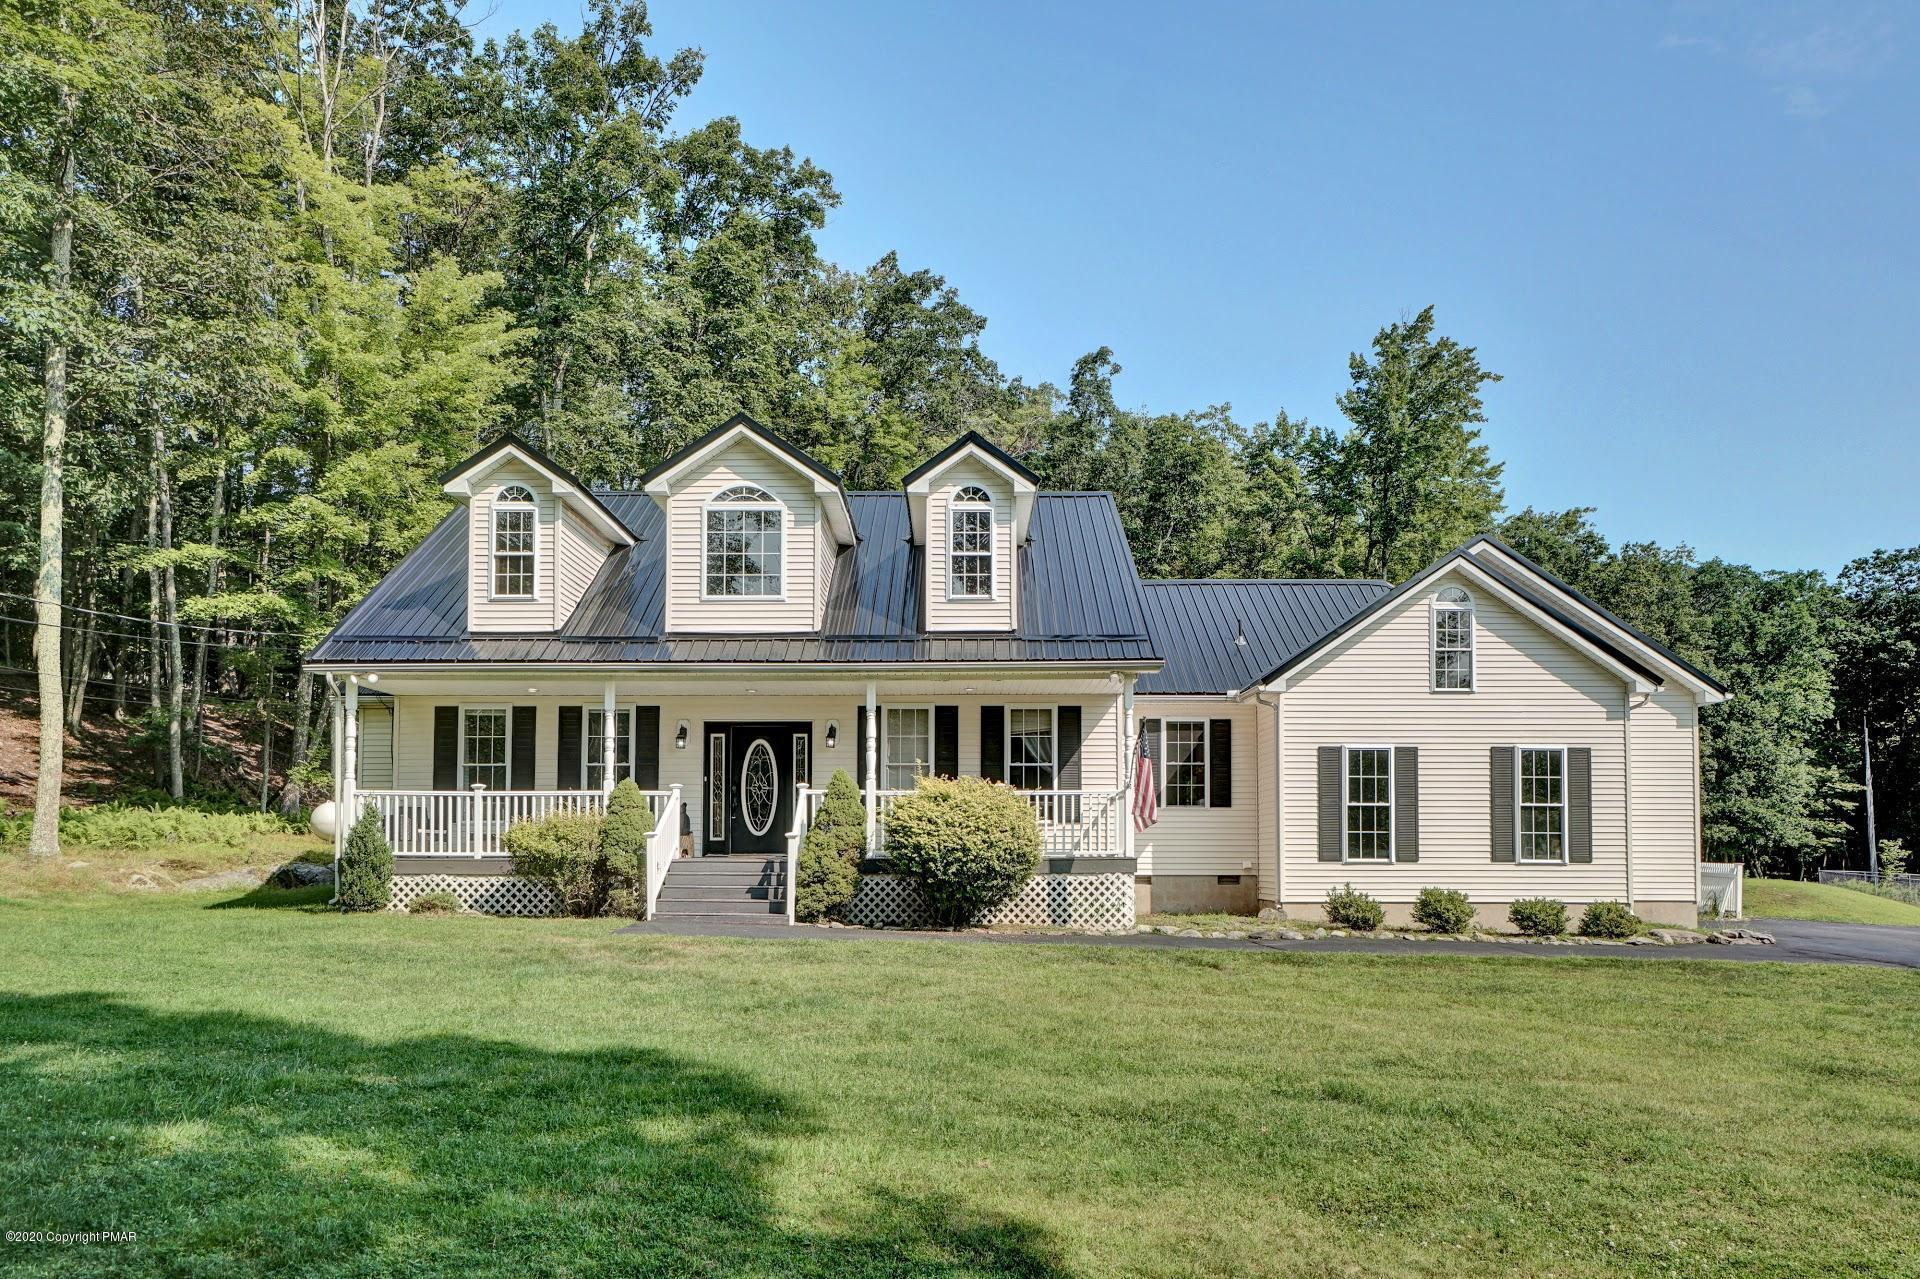 403 Iroquois Loop, Canadensis, PA 18325